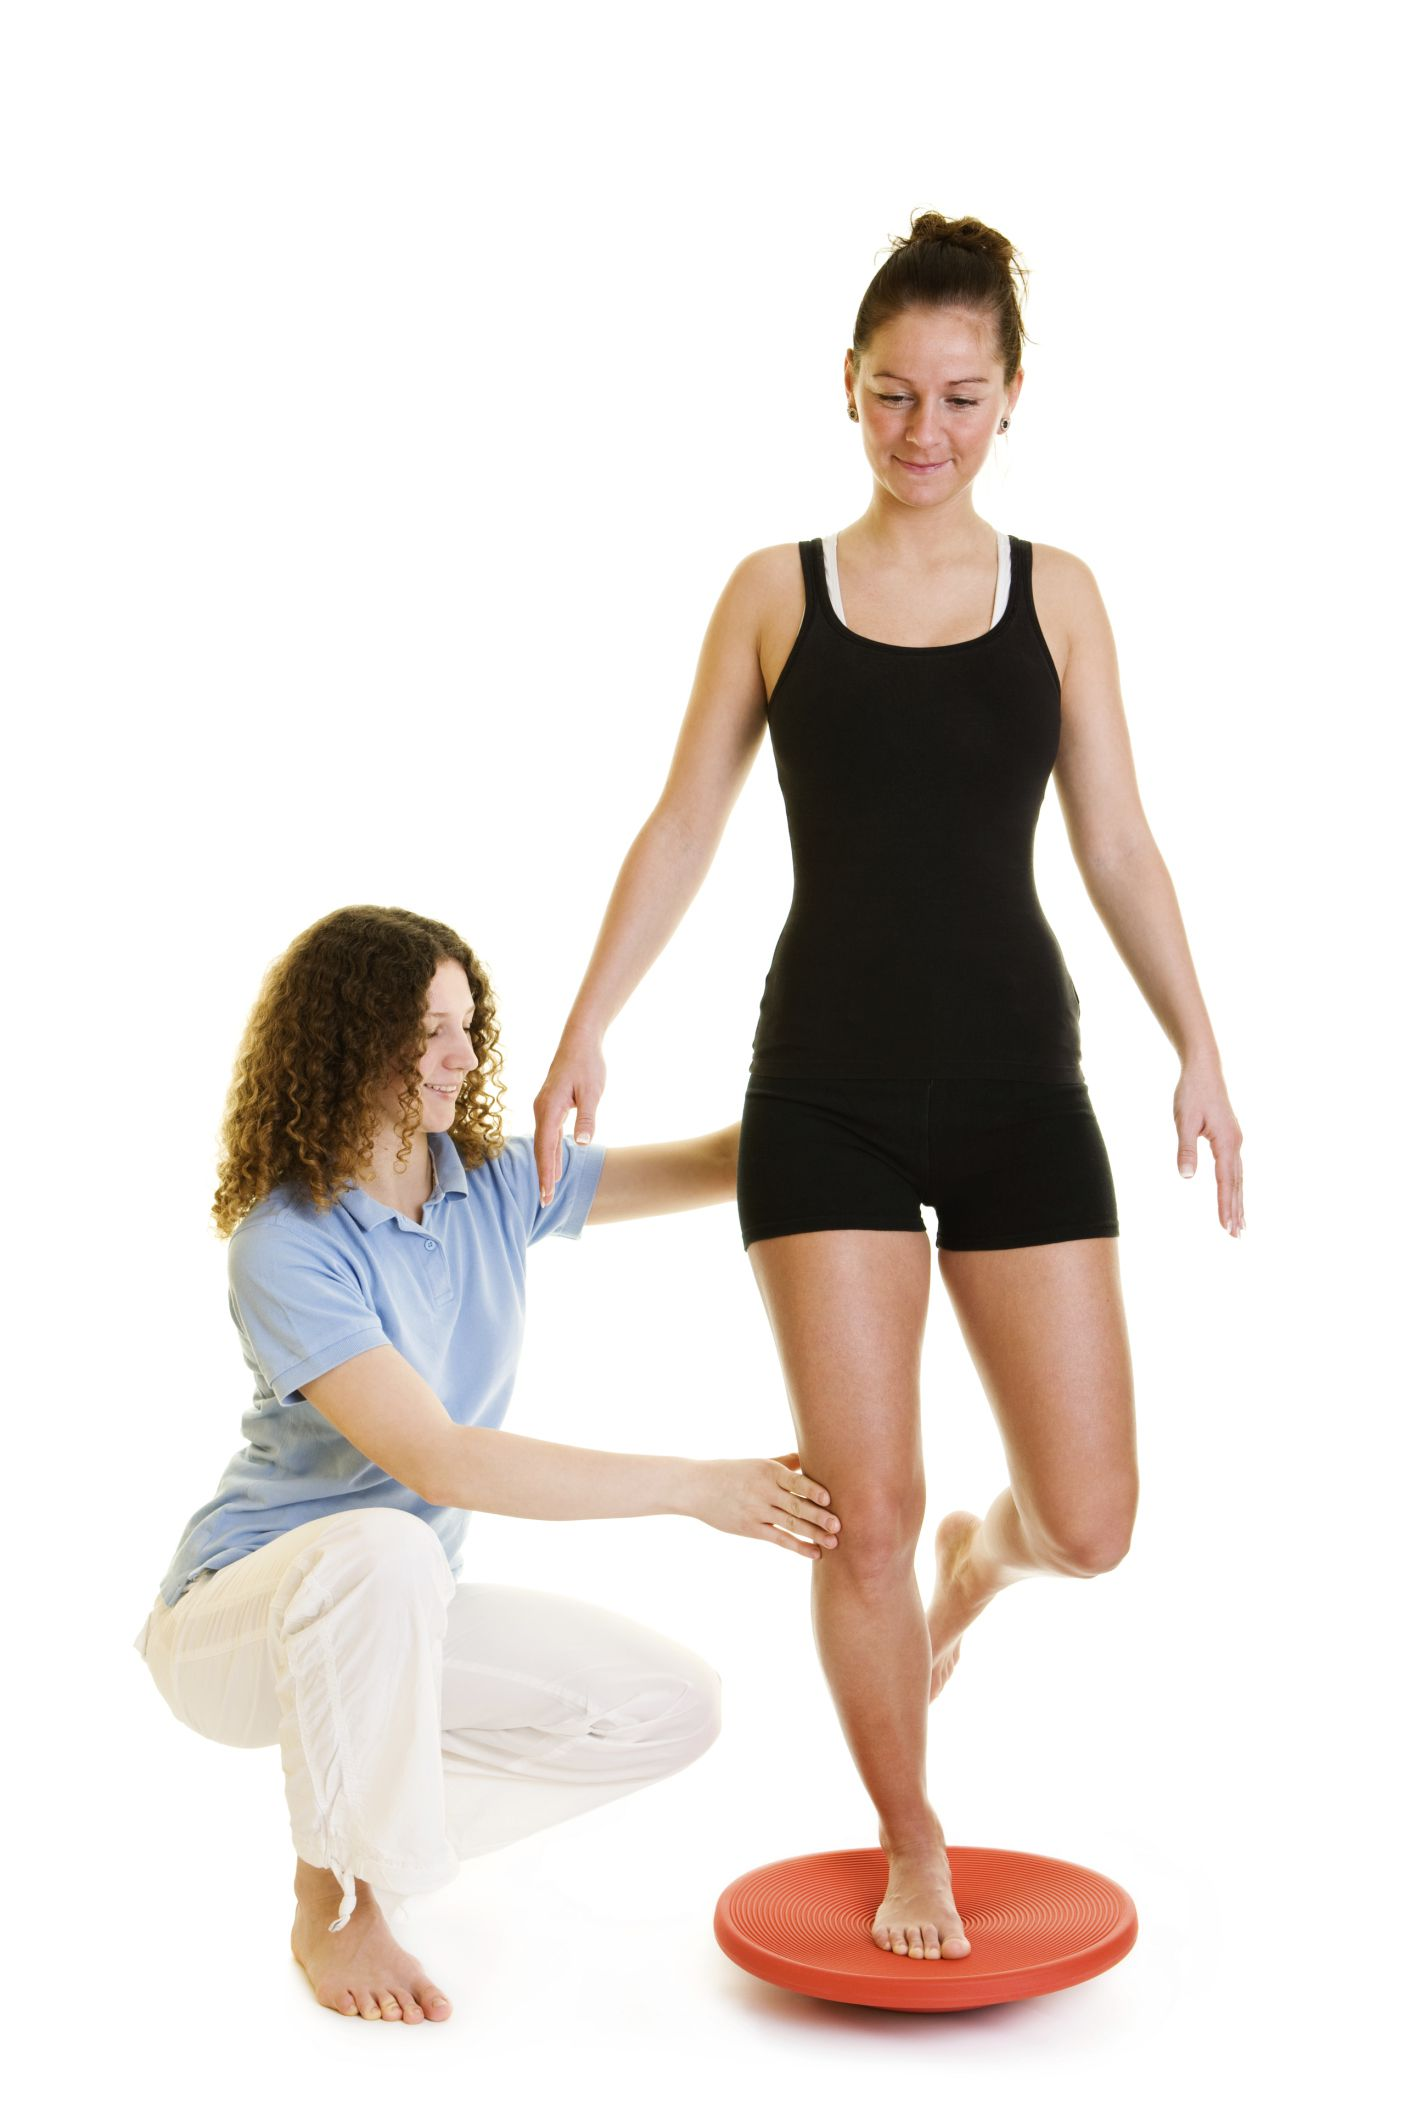 Ankle Rehab With a Balance or Wobble Board